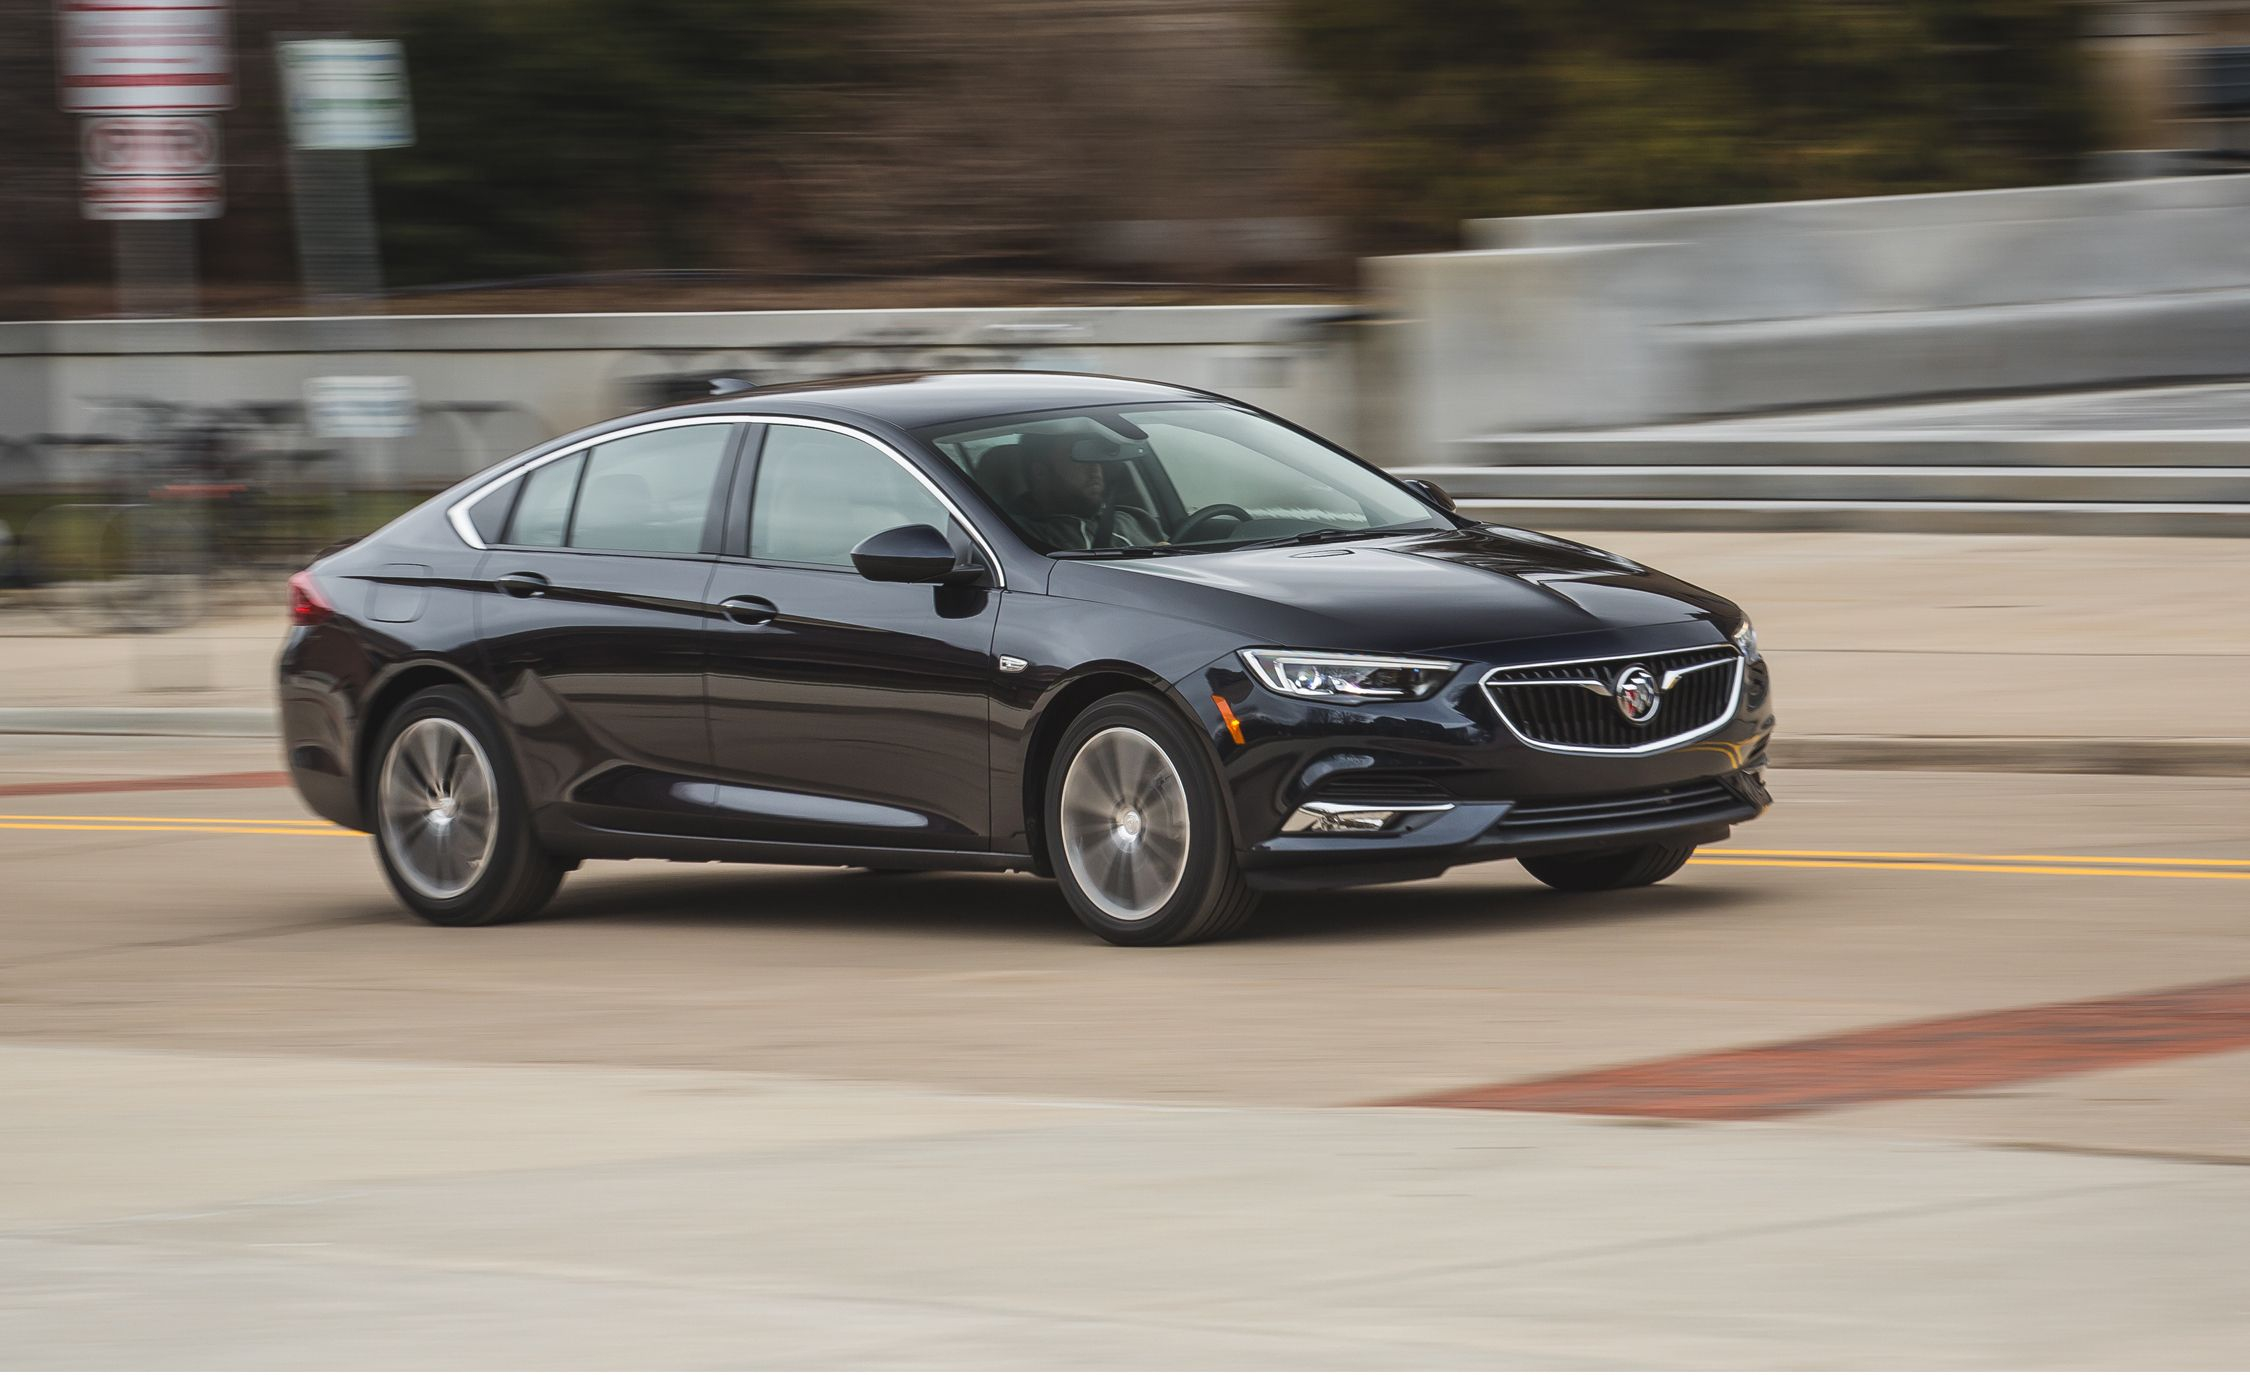 2018 Buick Regal Sportback Fwd Test | Review | Car And Driver 2021 Buick Regal Lease Deals, Exterior Colors, Horsepower